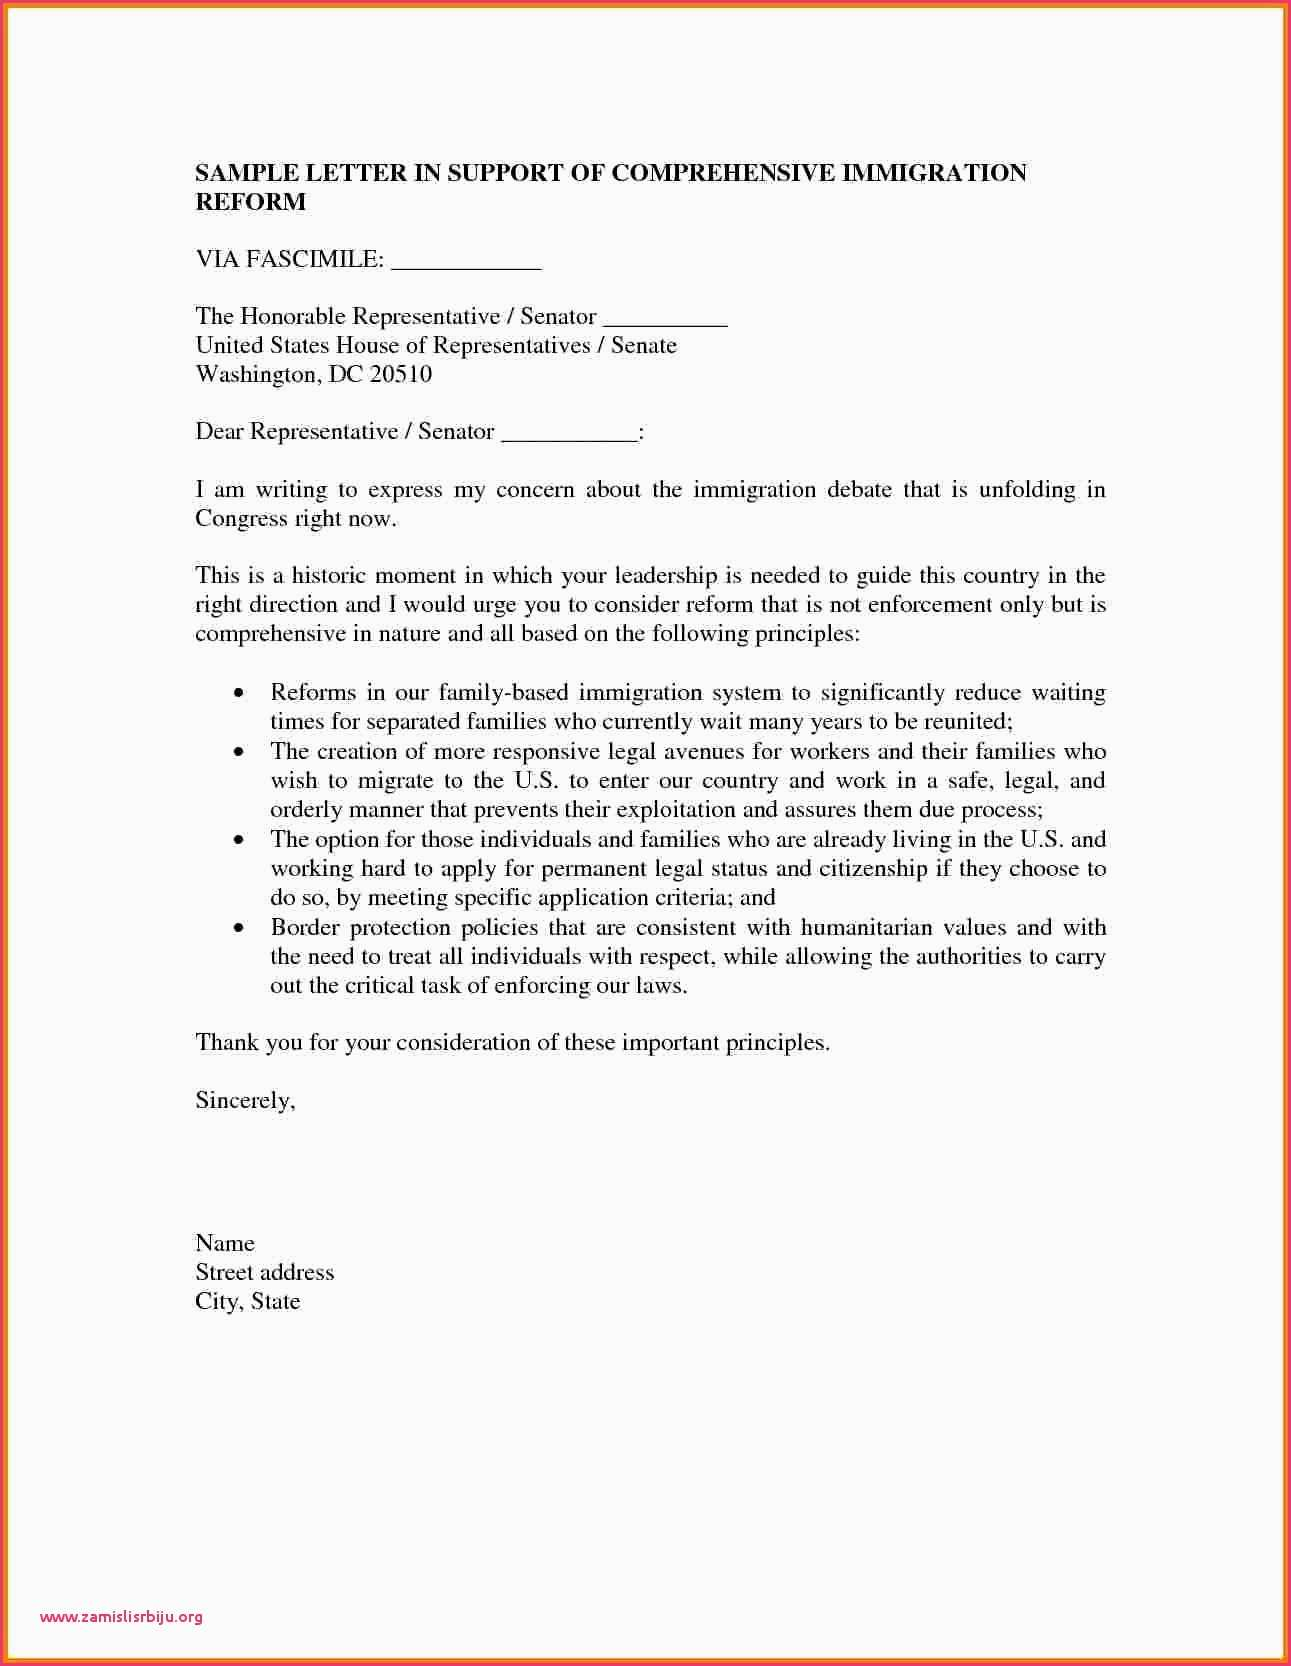 immigration letter of support for a friend template Collection-Hardship Letter for Immigration Example Best How to Write A Support Letter to Immigration for A Friend Image 5-i